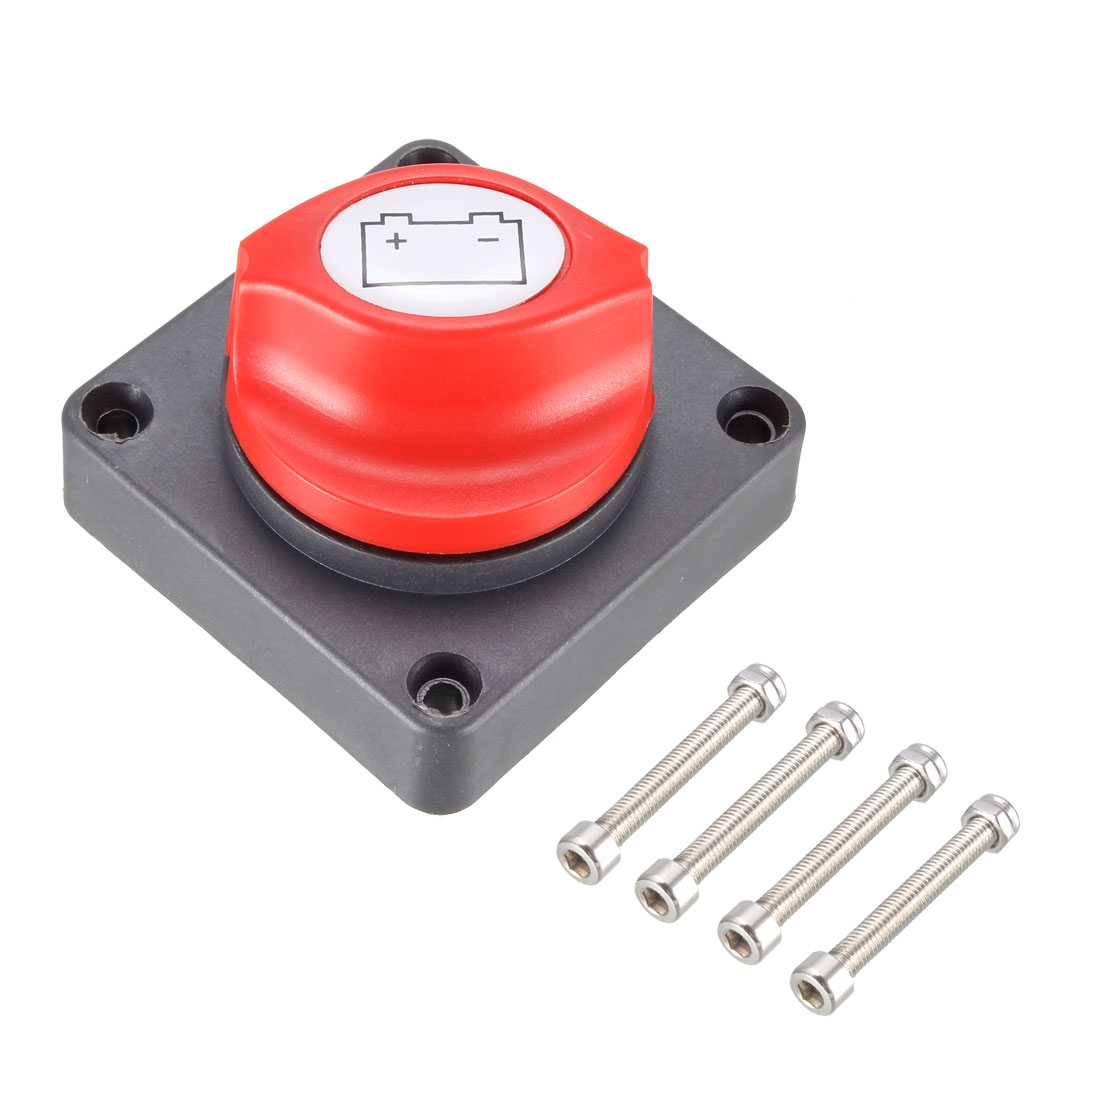 Battery Switch Disconnect 12-48V On/Off Power Cut Master Switch Isolator